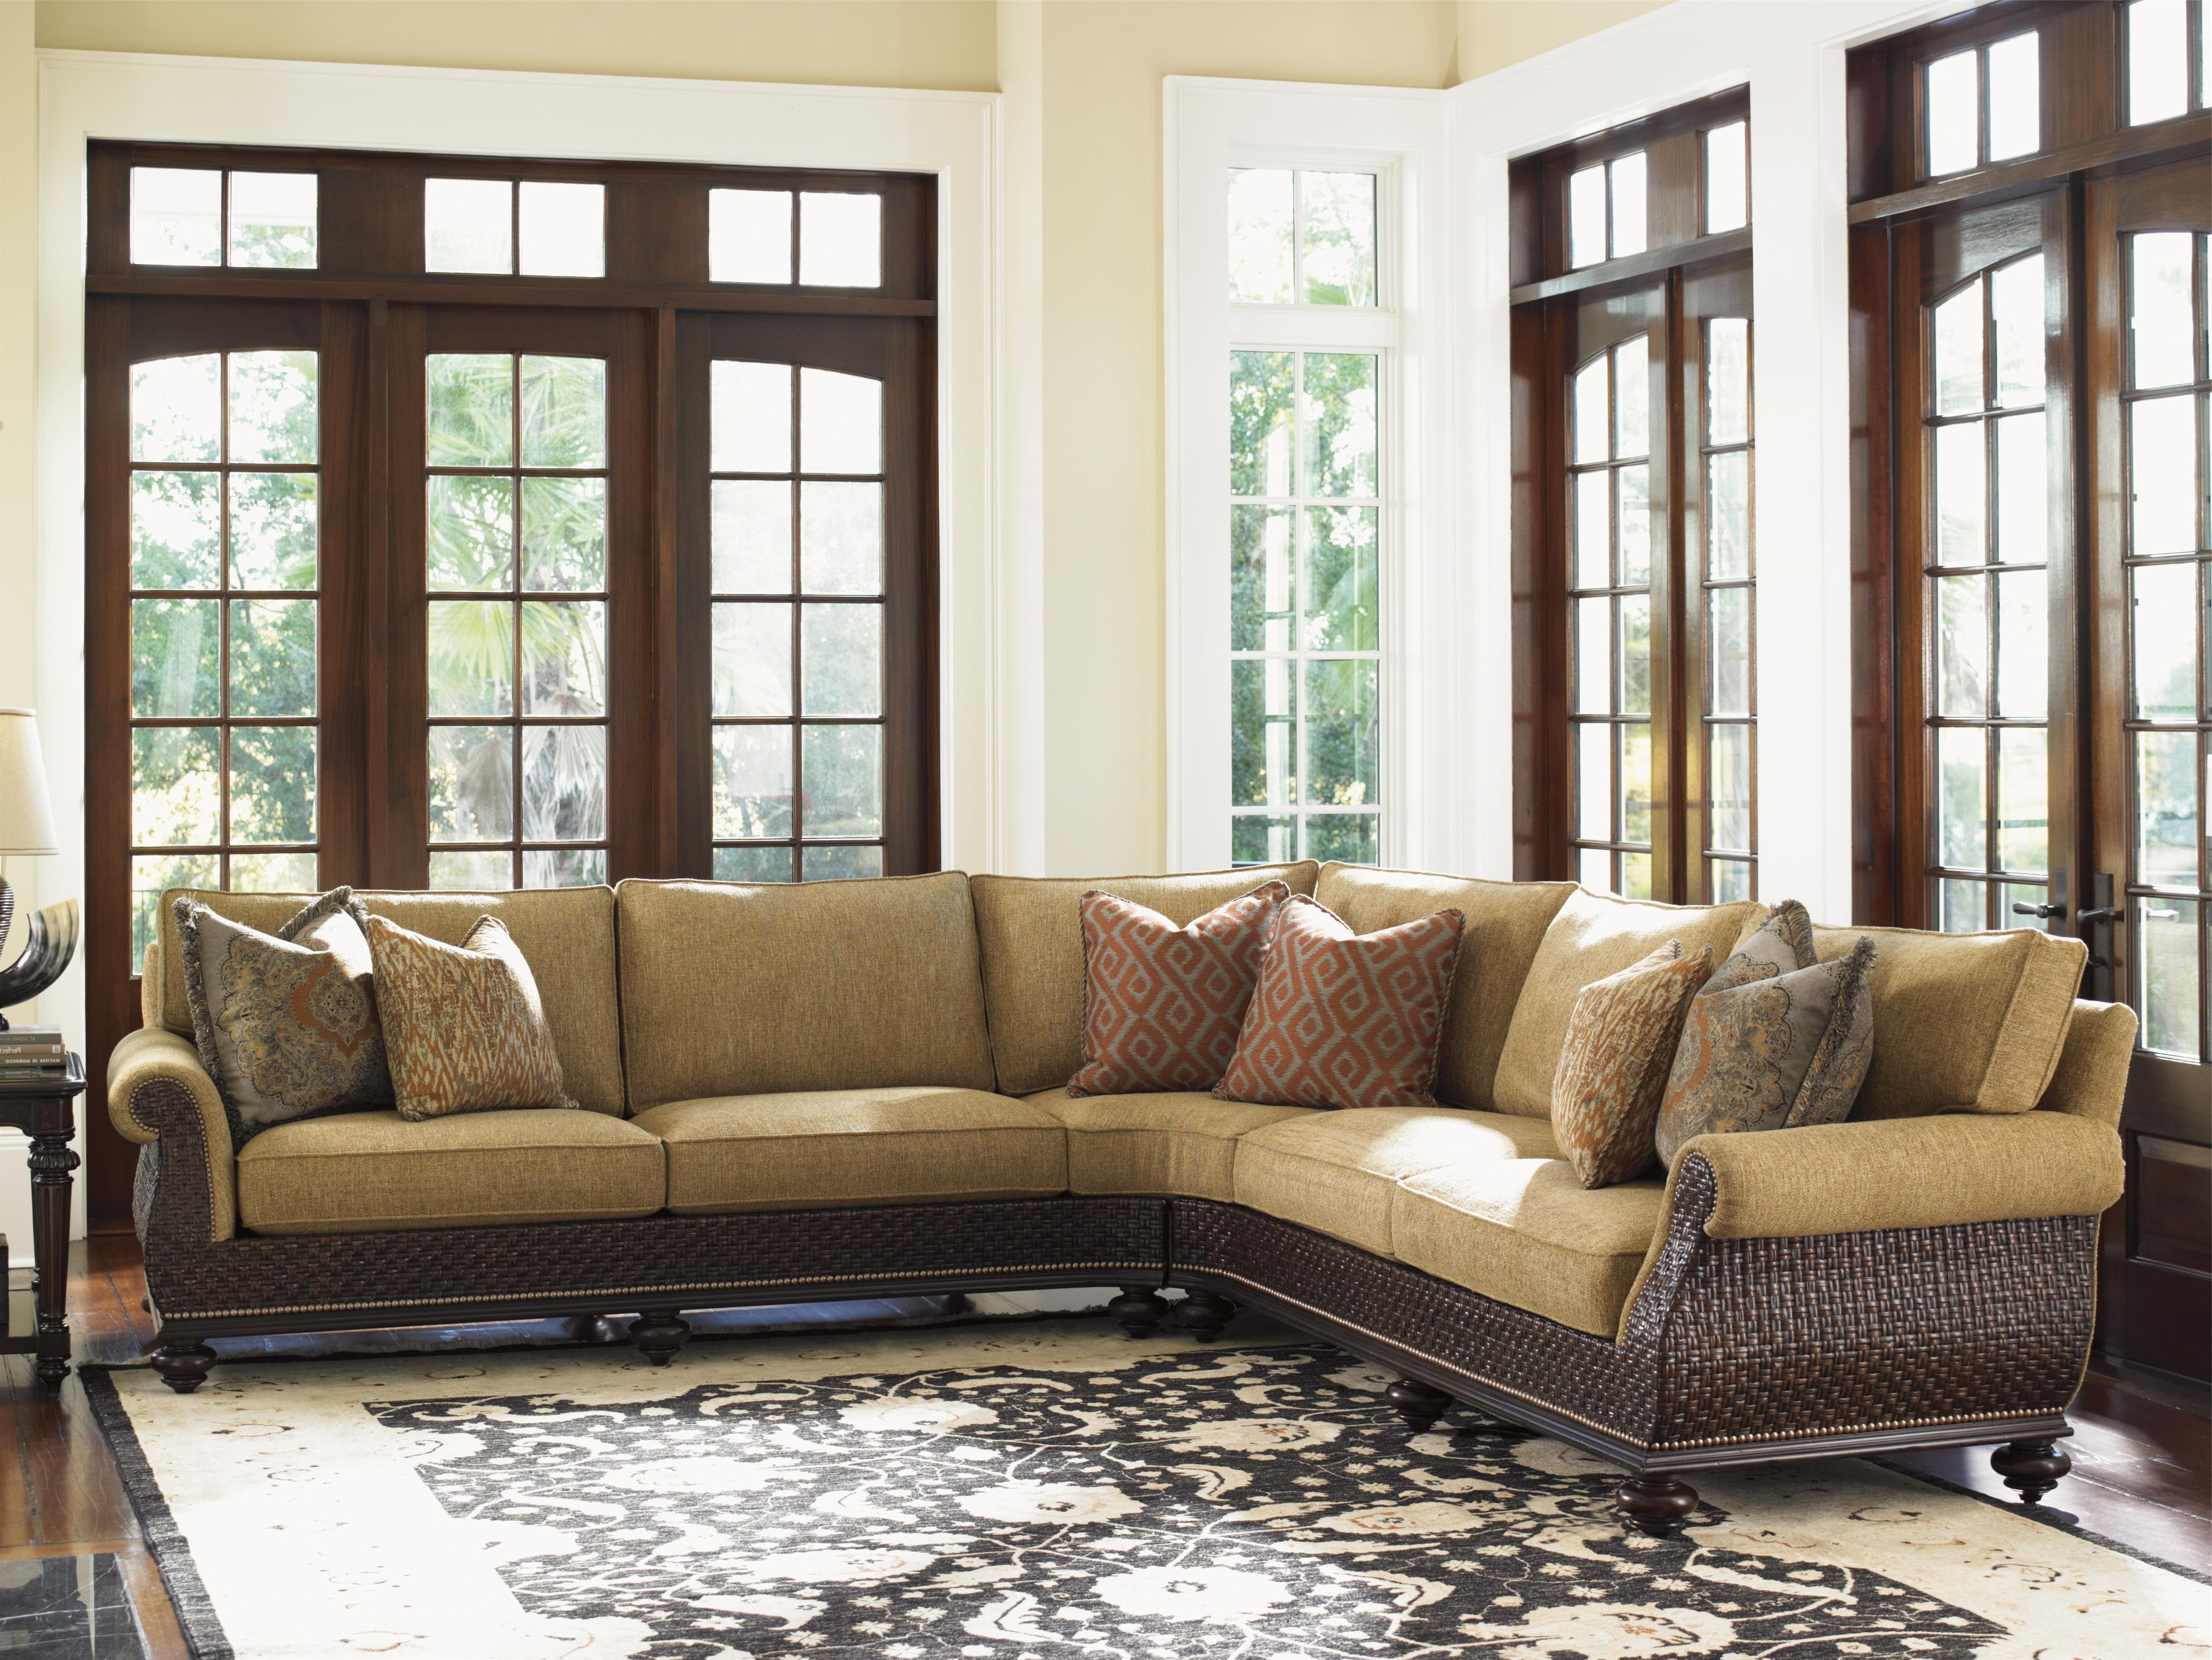 Well Known Tommy Bahama Home Island Traditions Westbury Sectional Sofa With Inside Gainesville Fl Sectional Sofas (View 15 of 15)